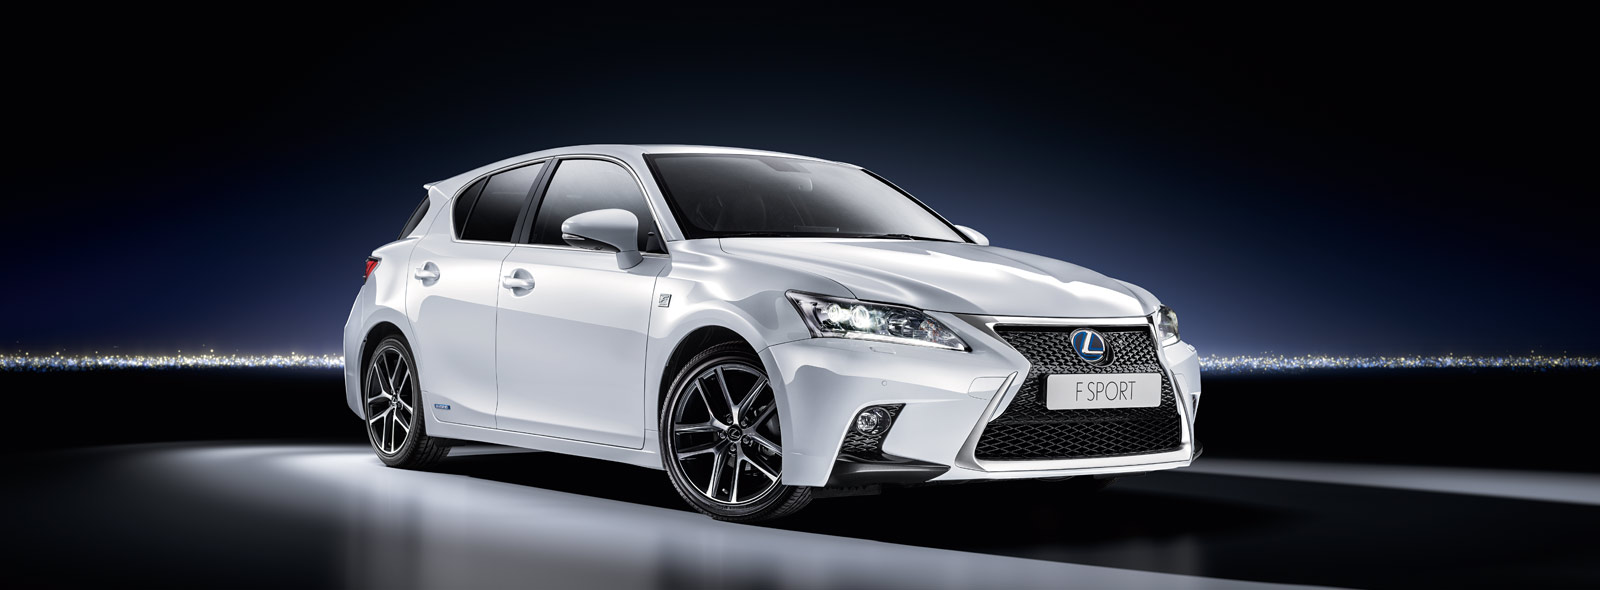 lexus ct 200h luxury hybrid hatchback car lexus uk. Black Bedroom Furniture Sets. Home Design Ideas